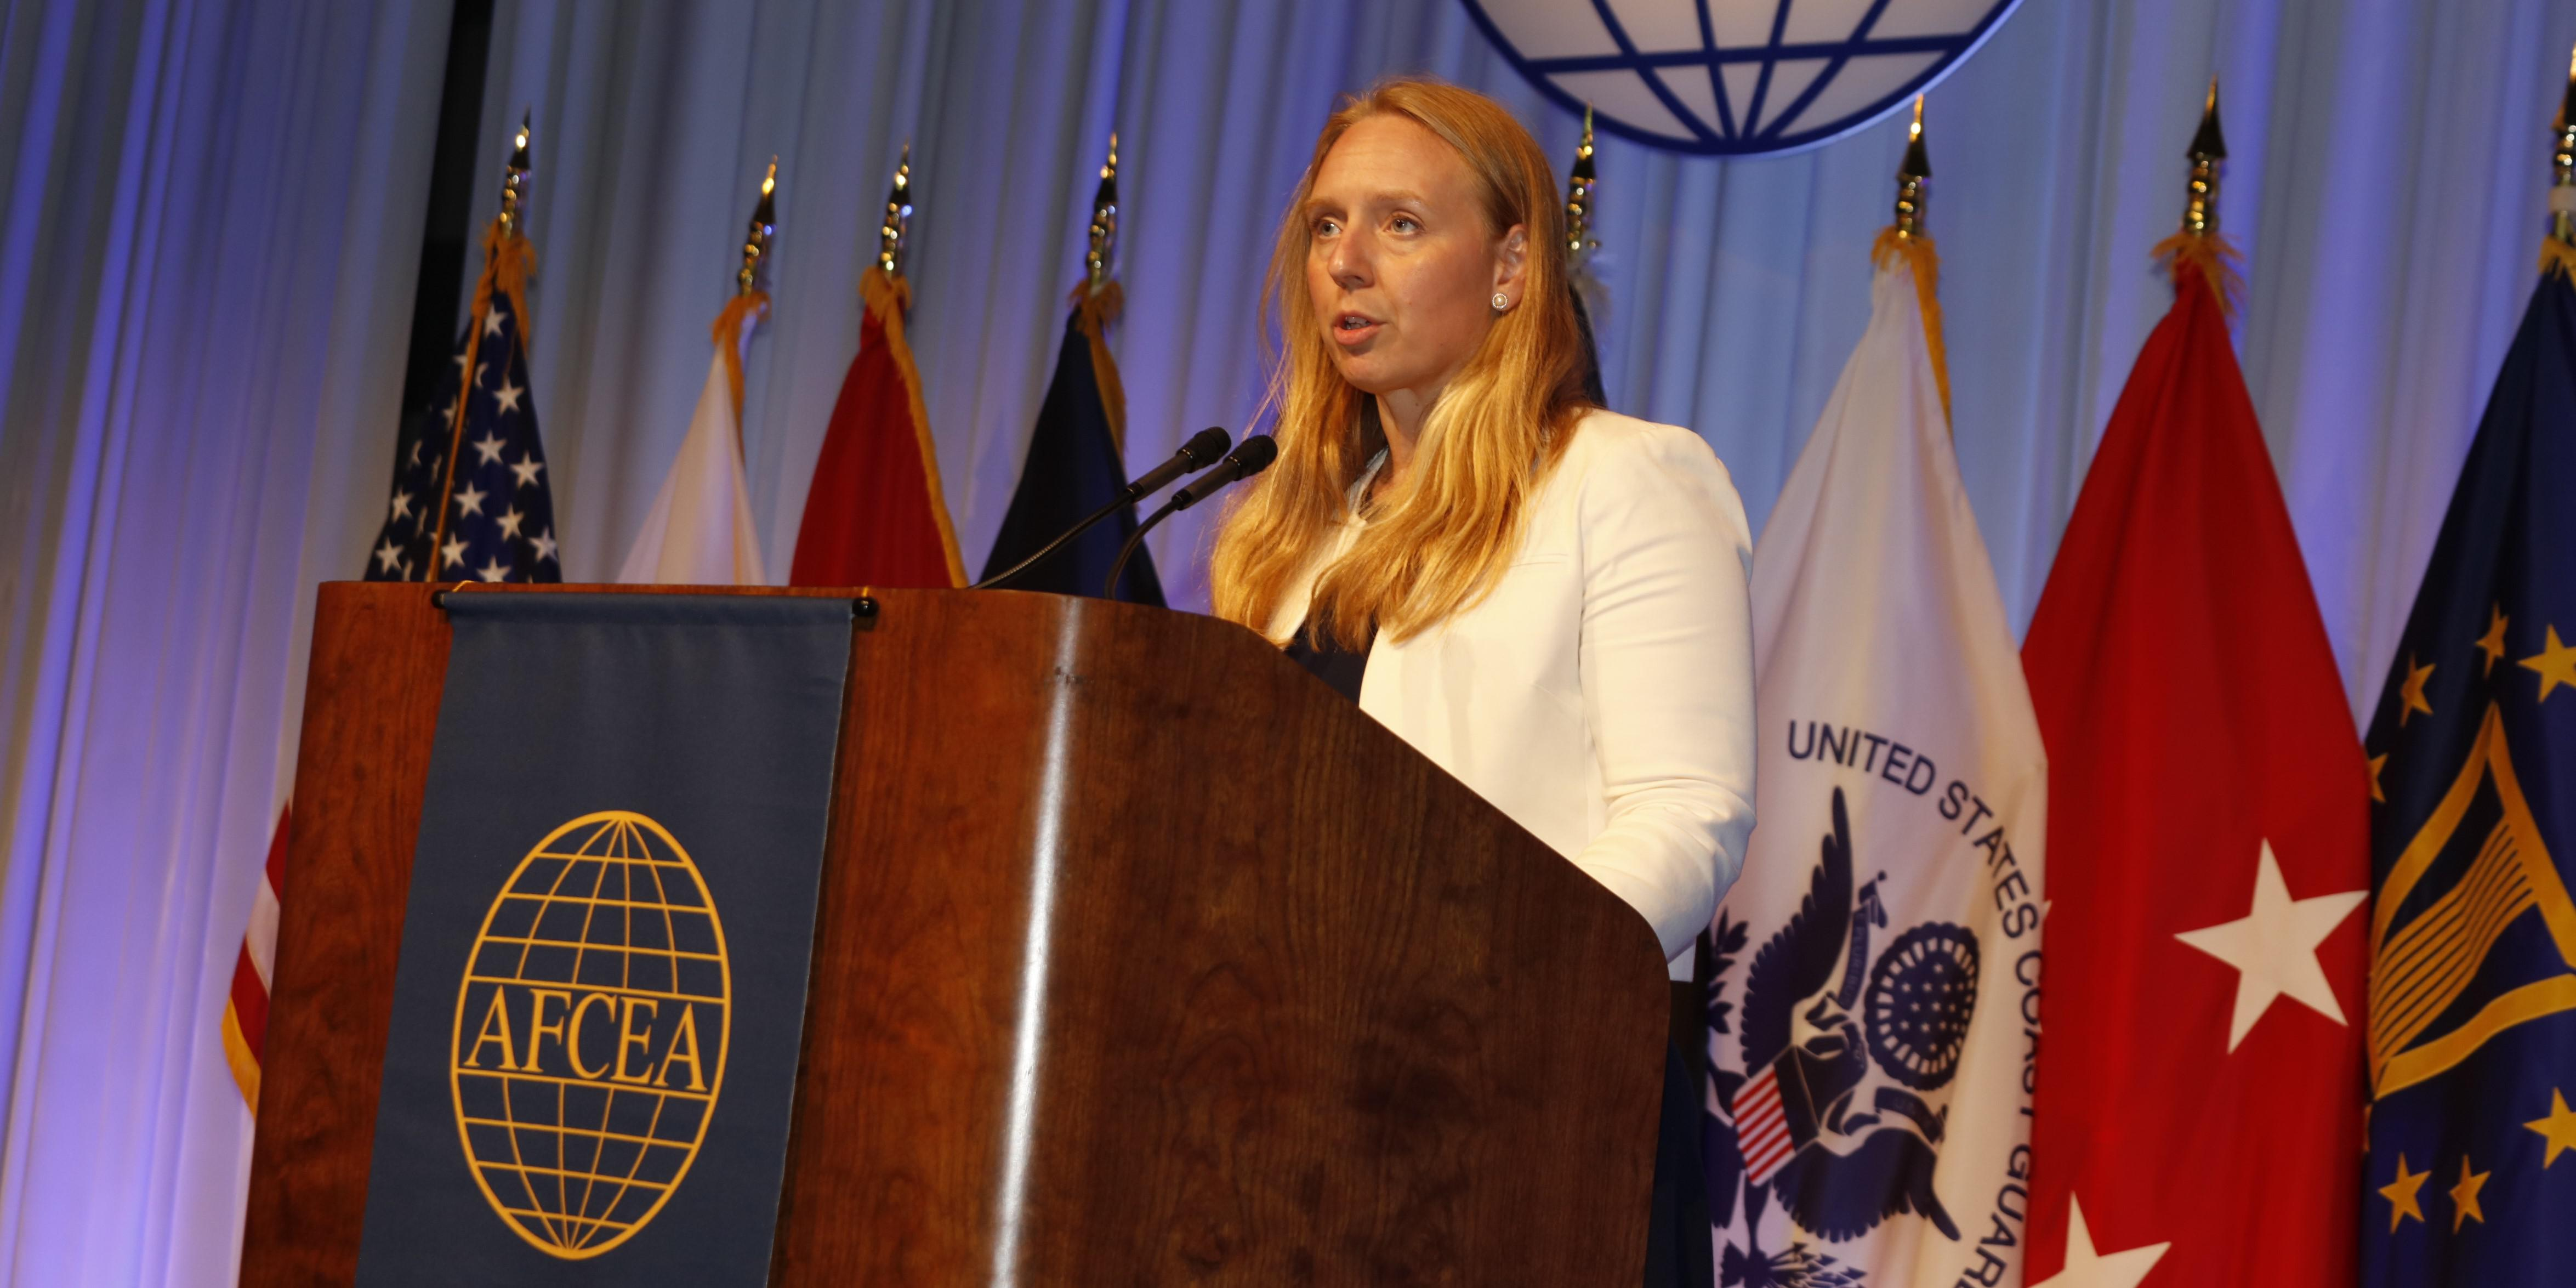 Kelly Fletcher, who is performing the duties of the DoD CIO, addresses attendees at TechNet Cyber 2021 in Baltimore. Photo by Michael Carpenter